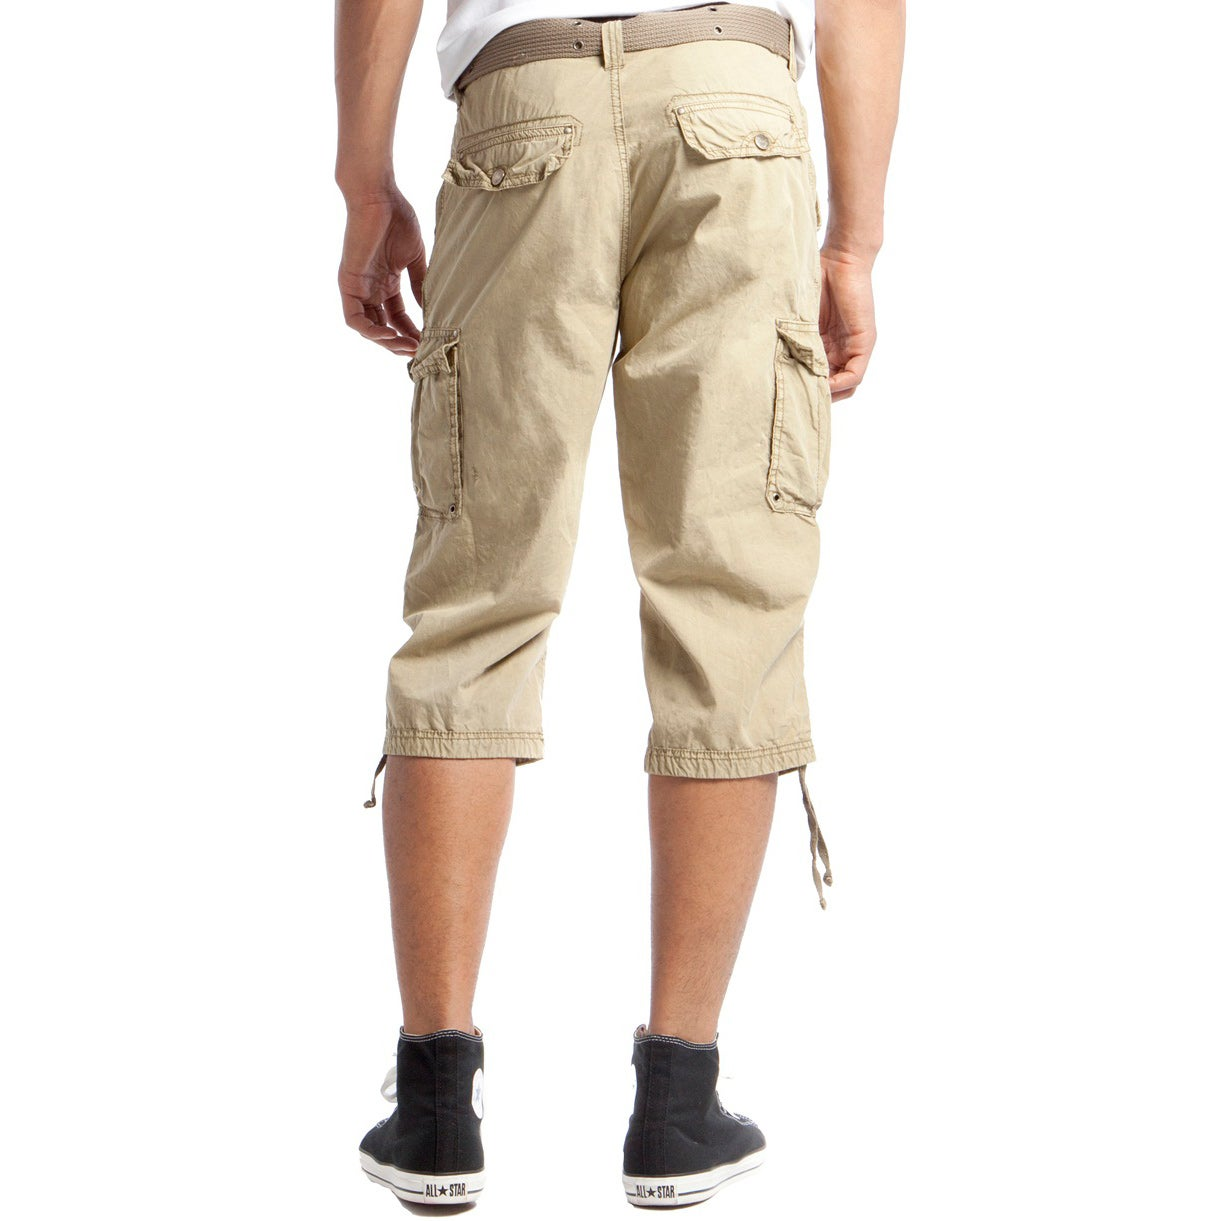 ed1b9f71bb Shop X-Ray Jeans Men's Cargo Shorts - Free Shipping On Orders Over $45 -  Overstock - 8171145